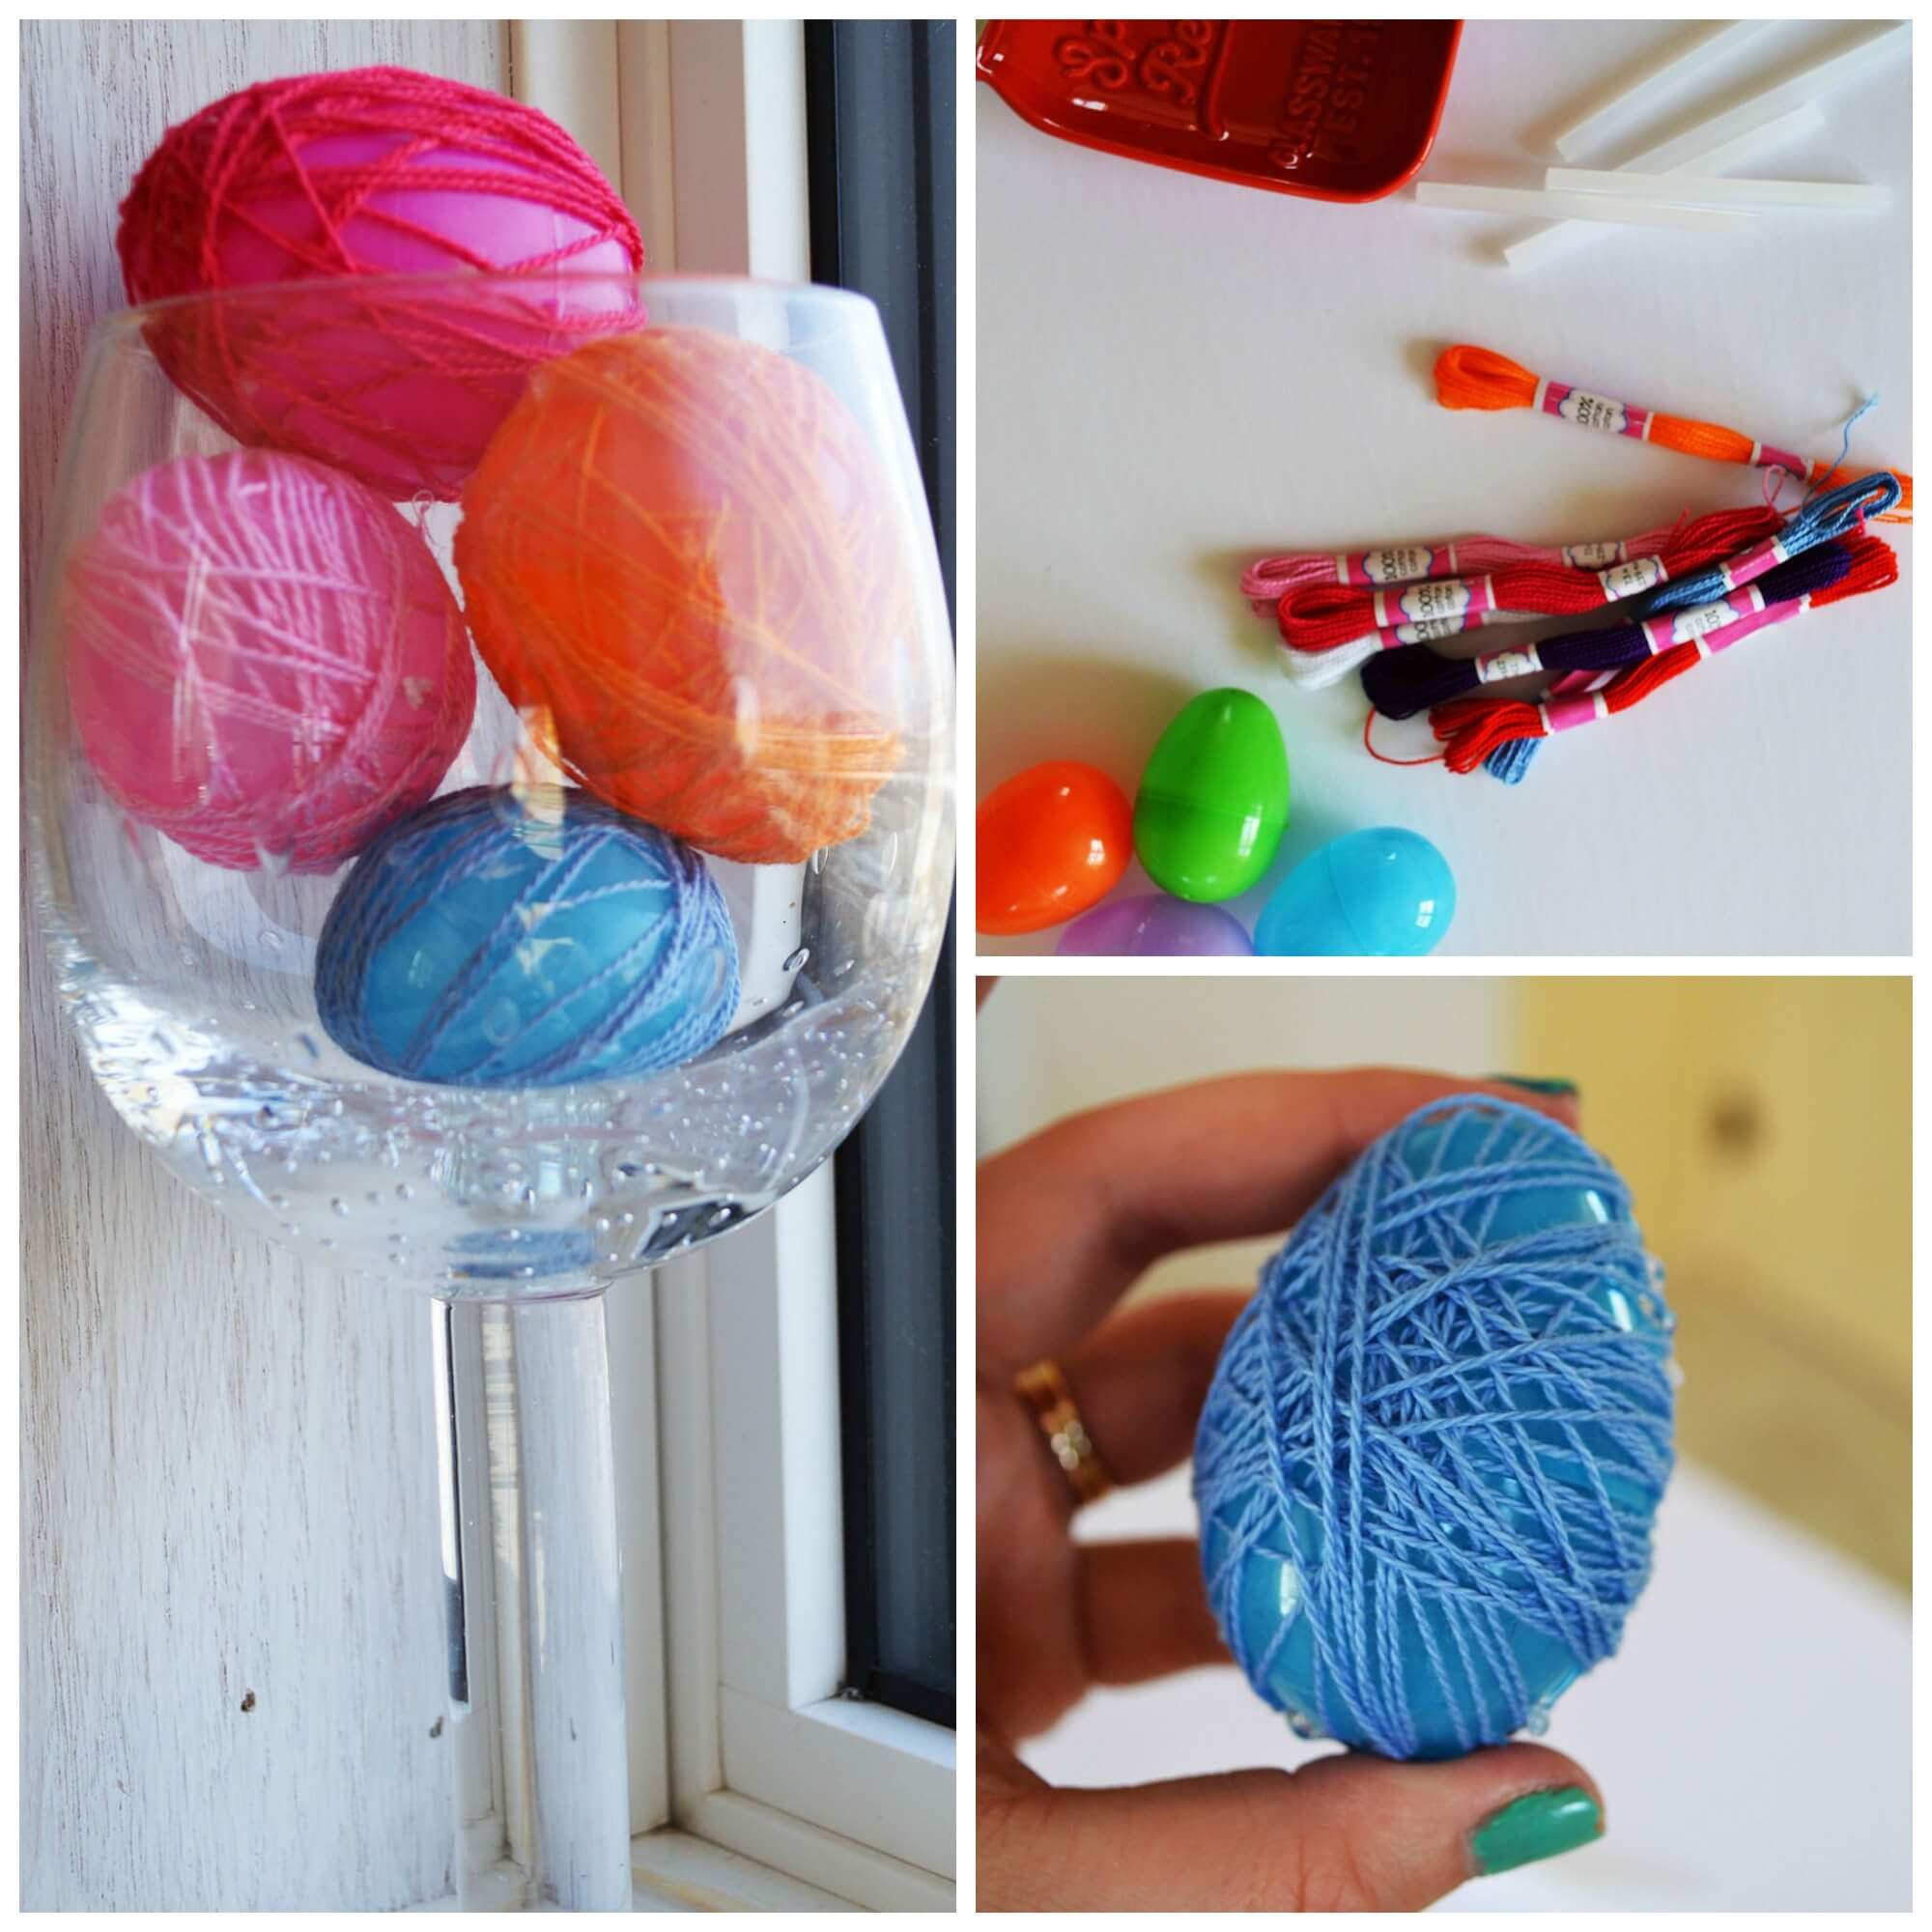 TOTS Family, Parenting, Kids, Food, Crafts, DIY and Travel easter-crafts-string-wrapped-eggs-3 Easy Easter Crafts Crafts DIY Holiday Treats TOTS Family Uncategorized  toilet paper roll craft plastic egg facecloth easy Easter crafts Easy crafts Easter crafts Easter bunny bunny